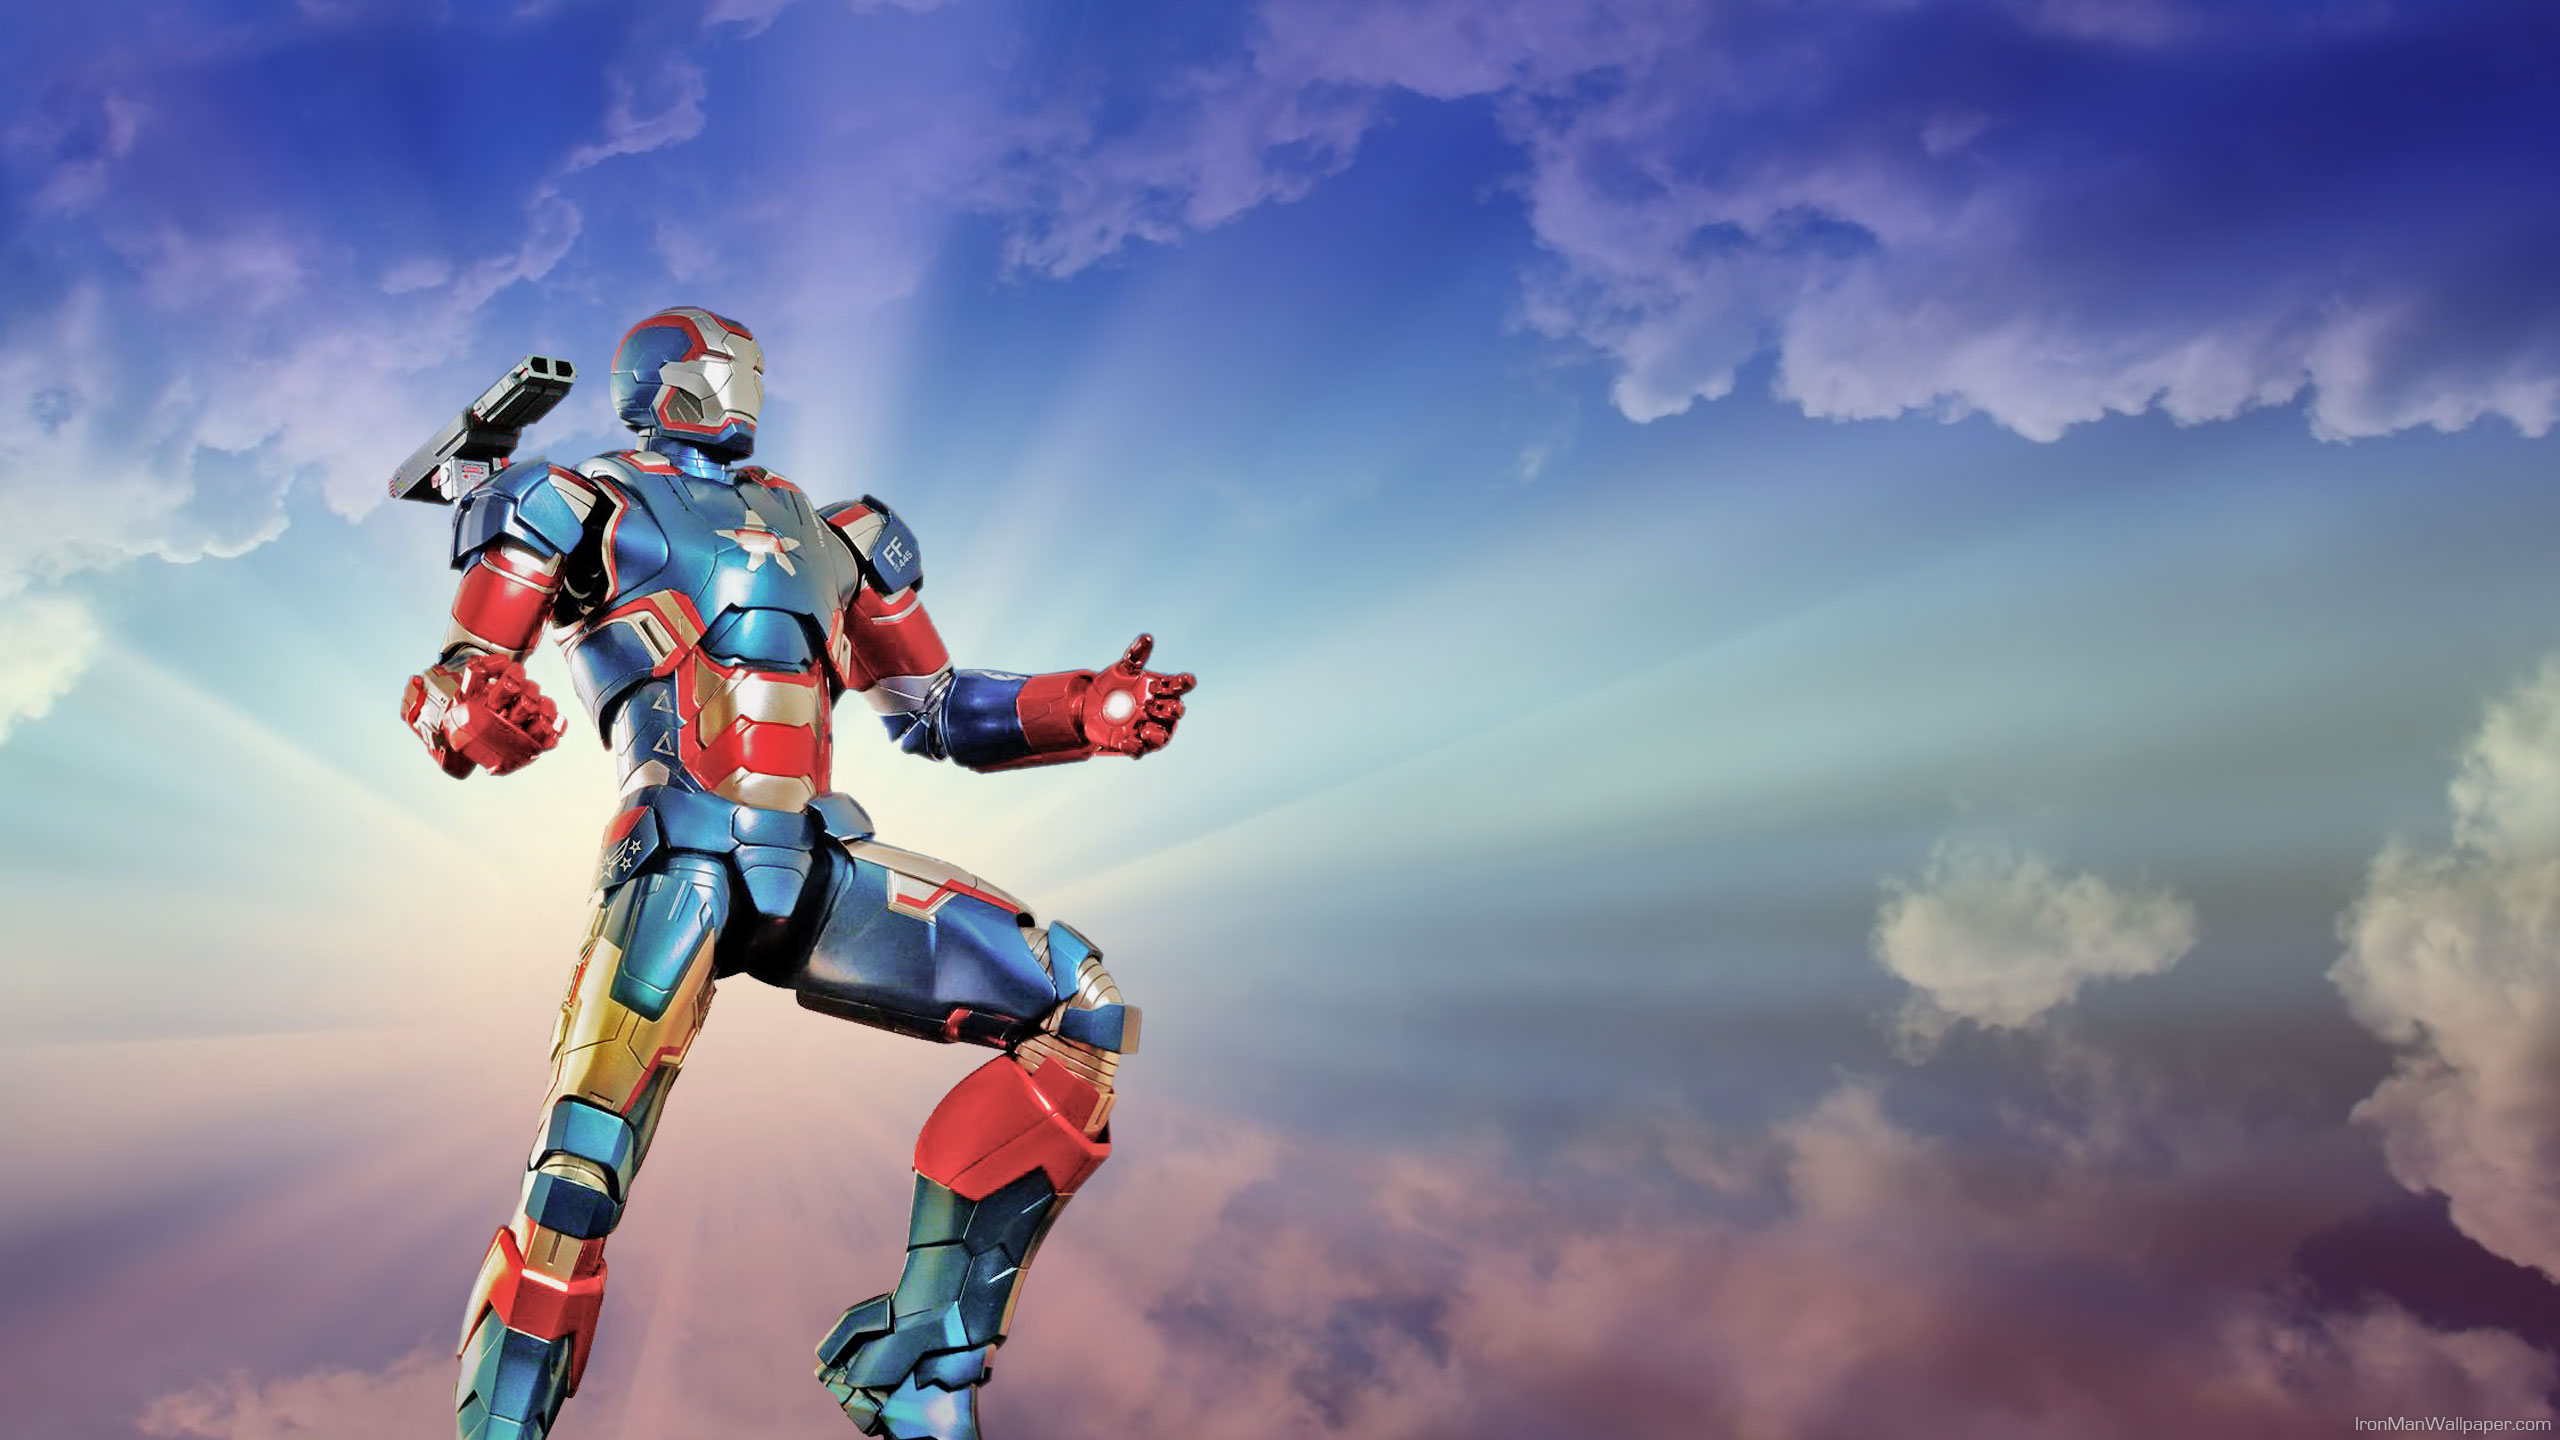 iron patriot sky background